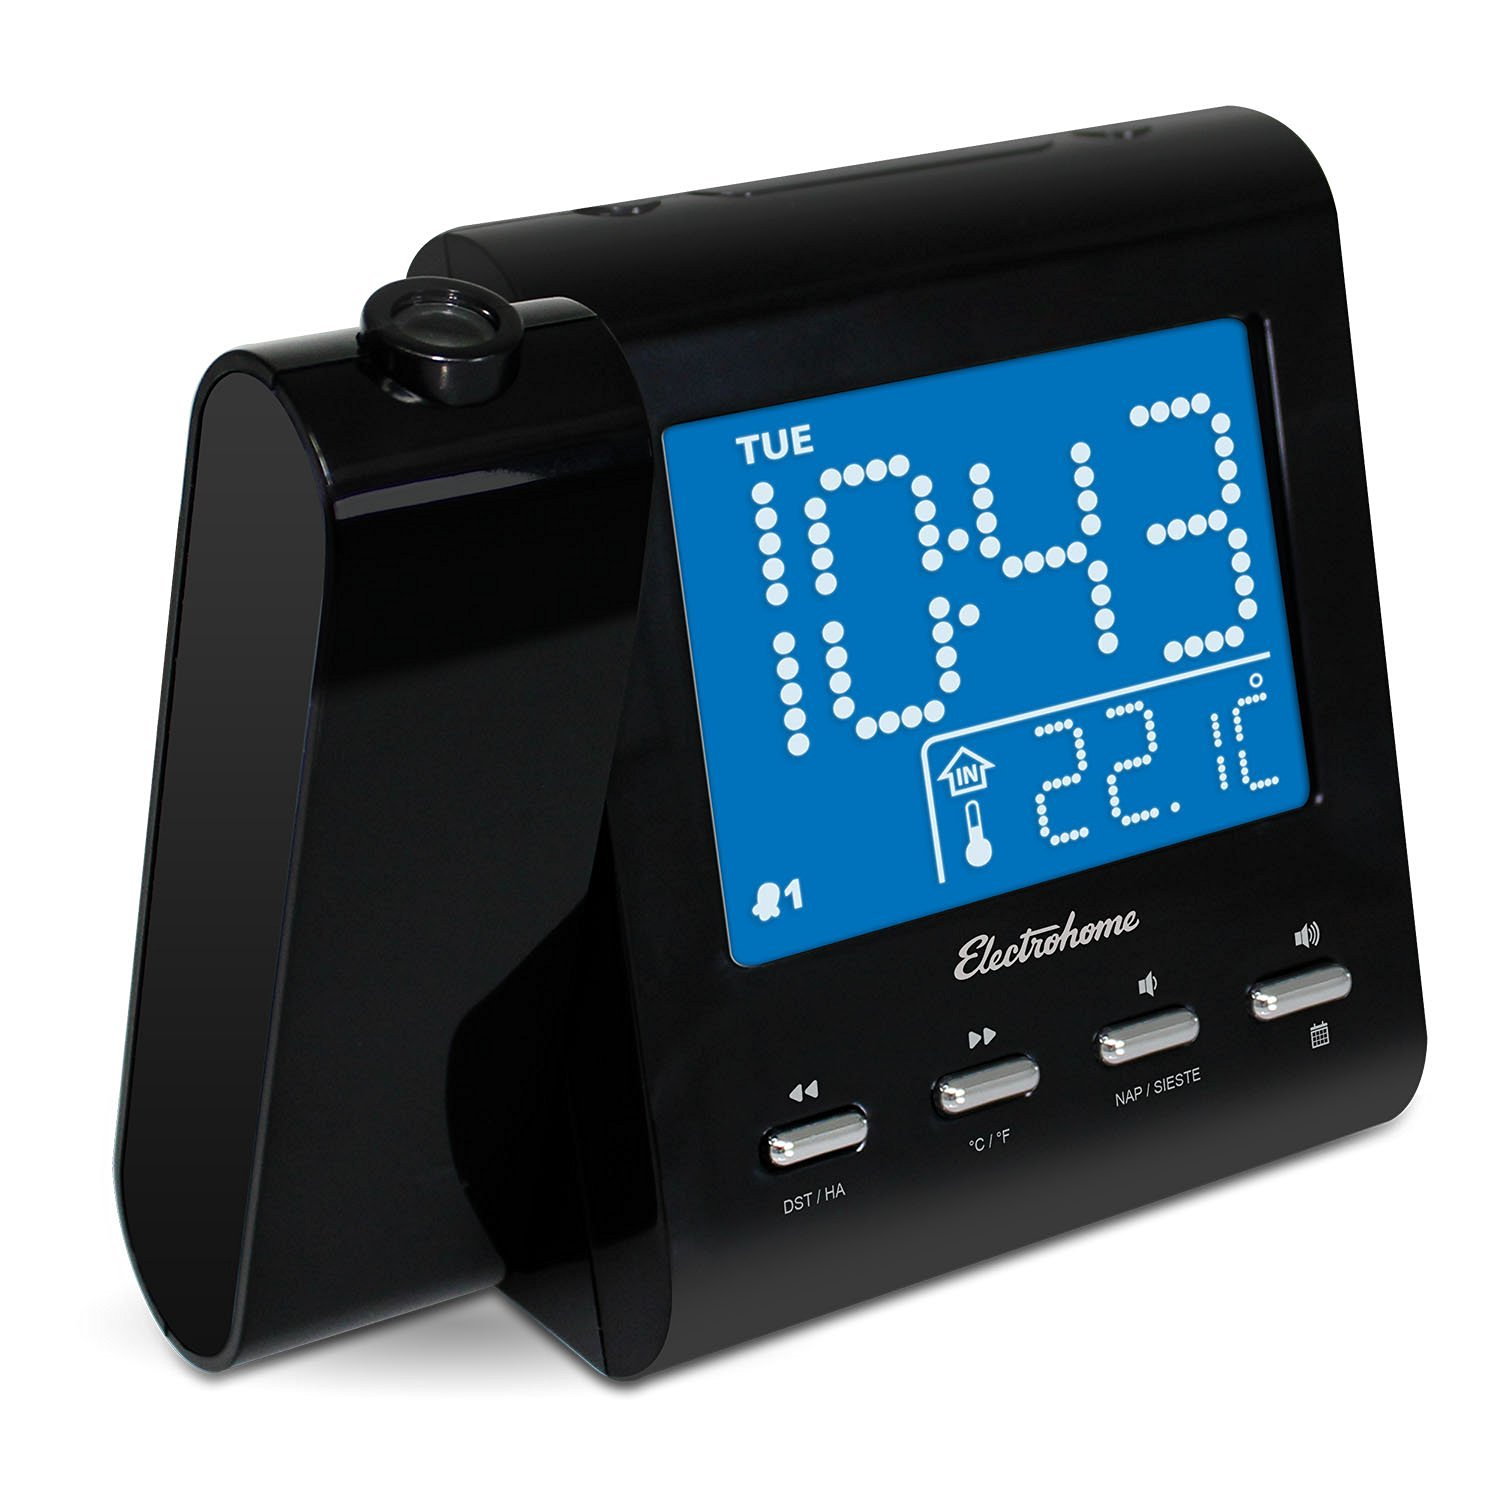 Electrohome EAAC601 Projection Alarm Clock with AM/FM Radio, Battery Backup Dual Alarm, Indoor Temperature/Day/Date Display, 3.5mm Audio Connection